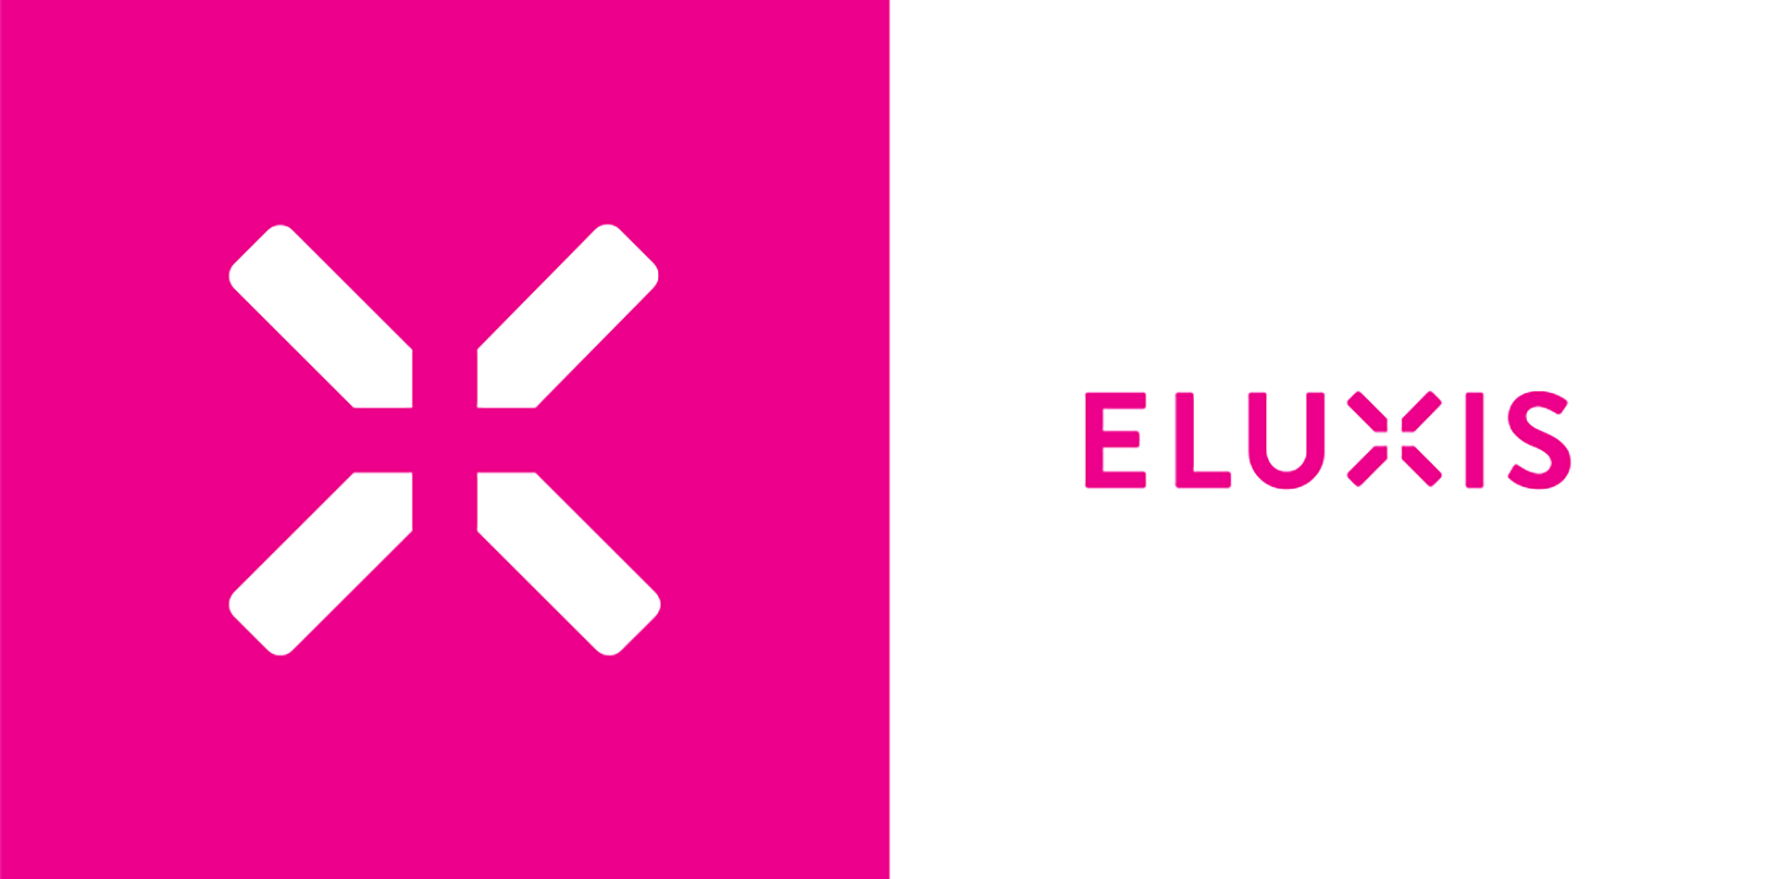 Clear and bold logo design for Eluxis